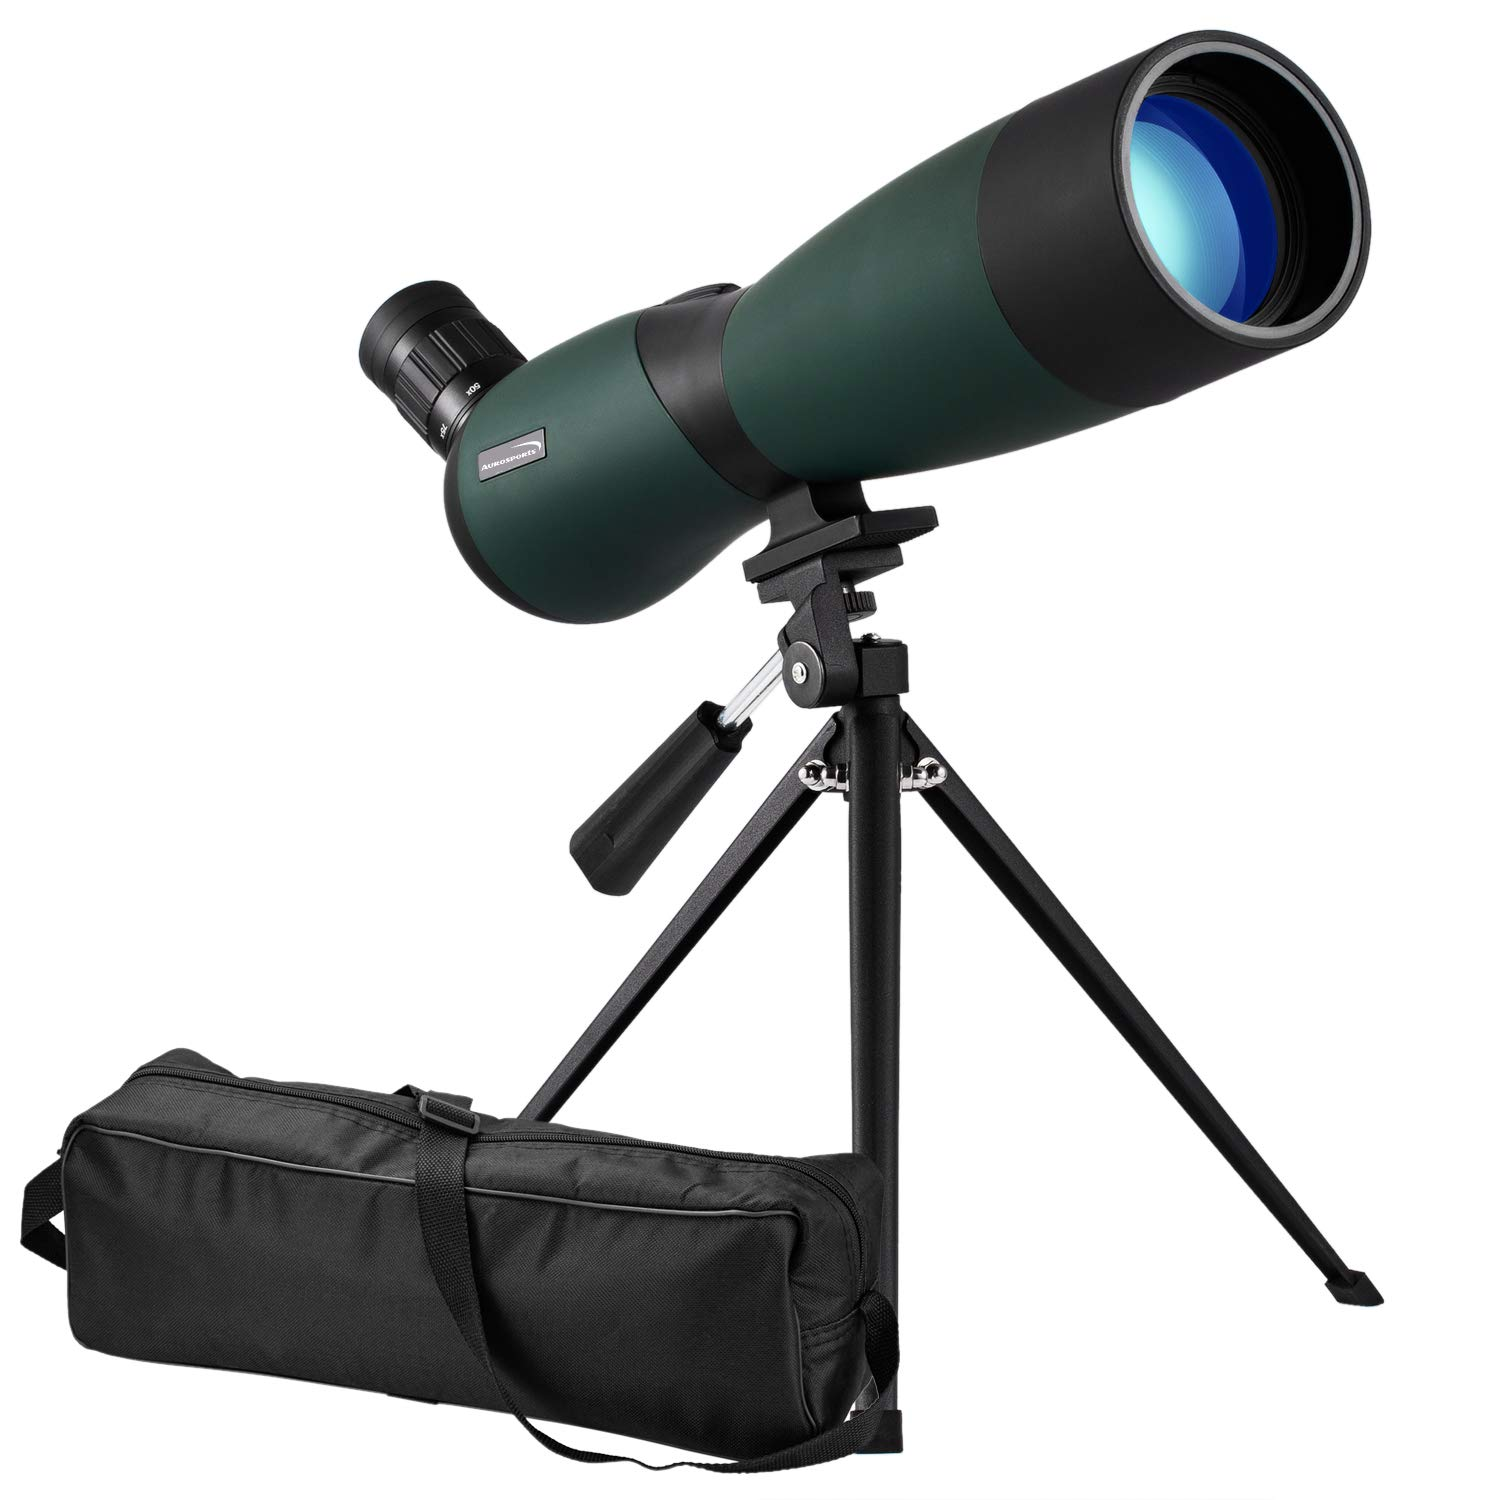 Aurosports 25-75x70mm HD Spotting Scope Waterproof Optics Zoom Fogproof Monocular Telescope for Bird Watching, Hunting, Target Shooting, Archery Wildlife Scenery with Tripod and Soft Case by aurosports